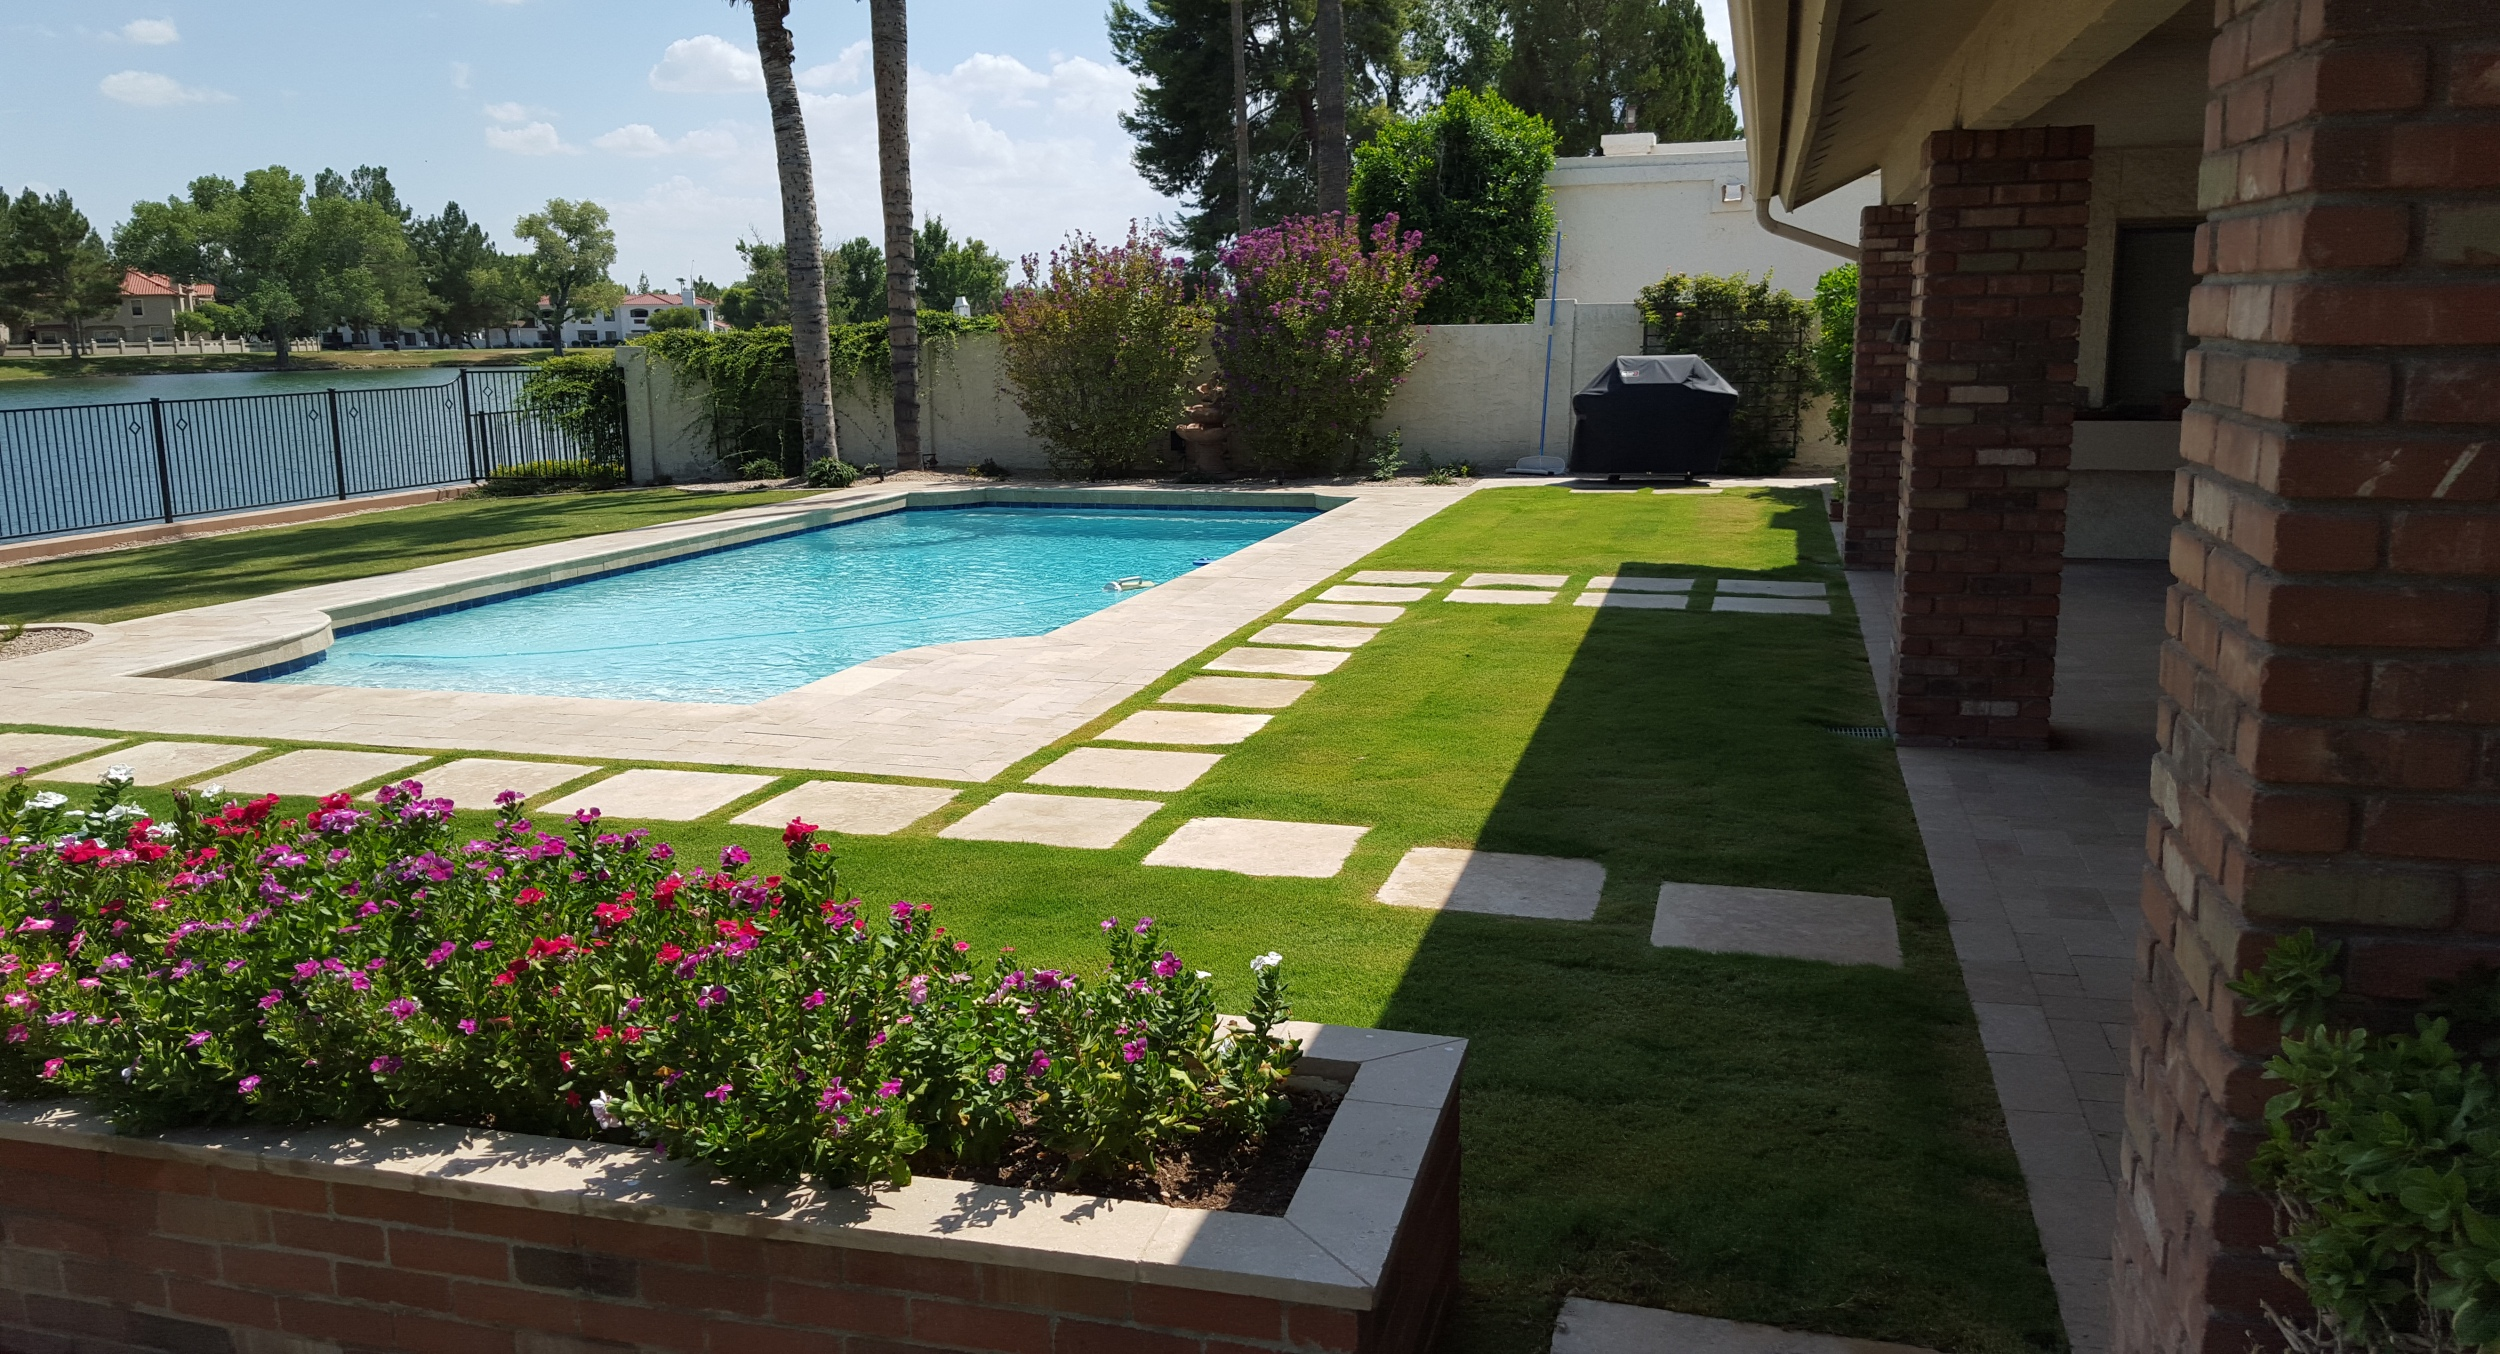 Refresh your older pool with gorgeous landscape design. Paradise Valley homeowners had us remove dated landscaping and pool decking, replacing it with desert bred sod and travertine stepping stones and pool deck.